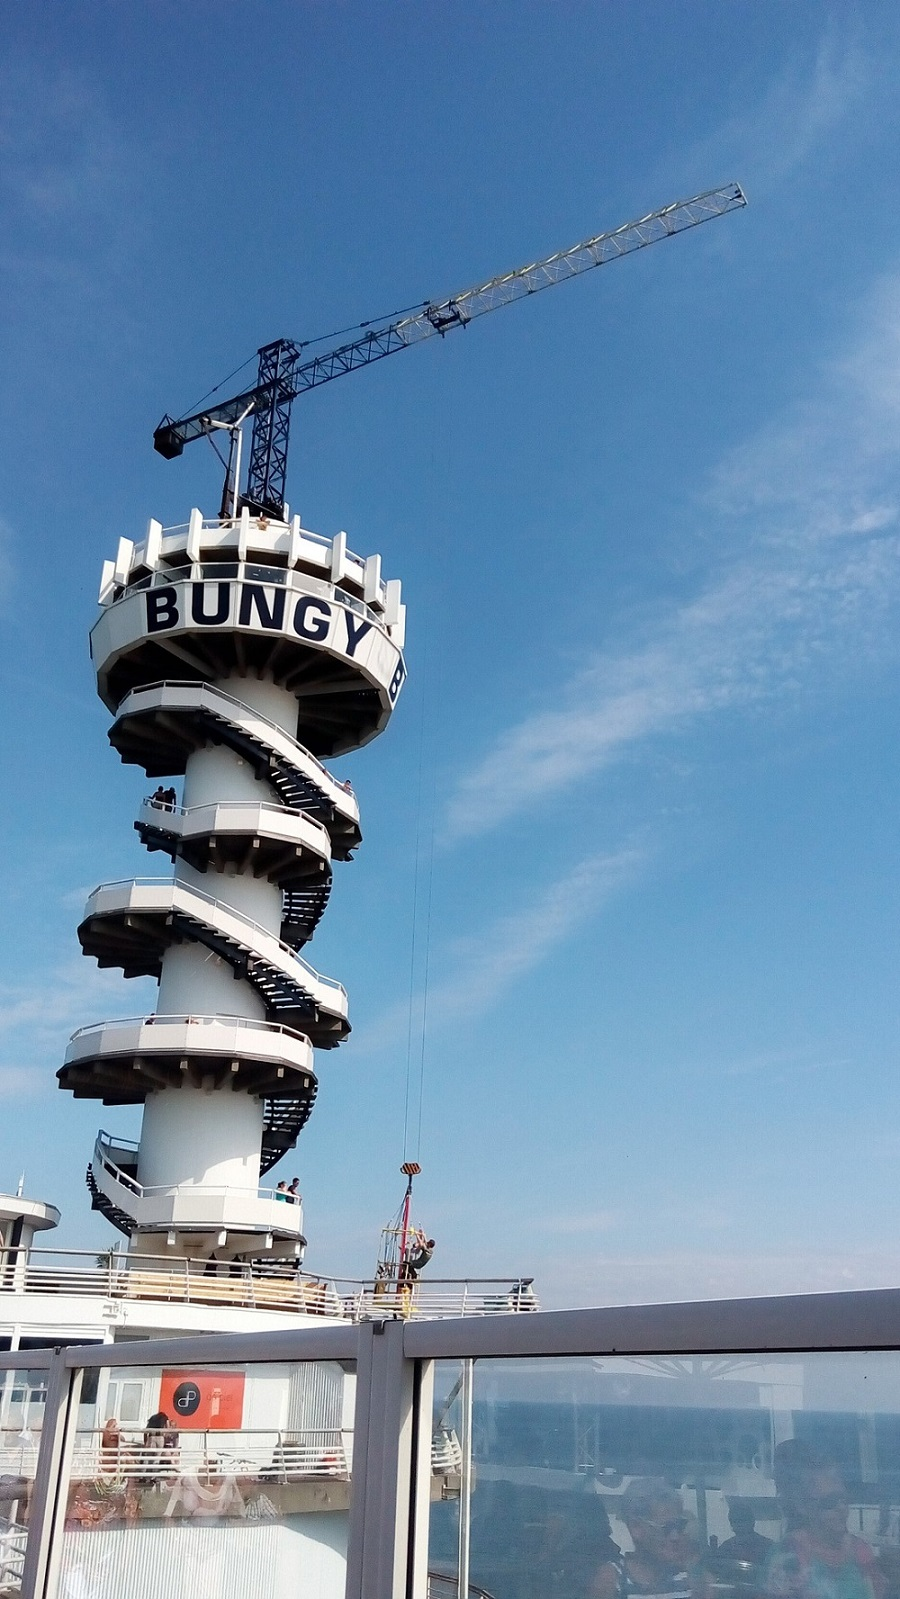 bungee-jumping-the-hague